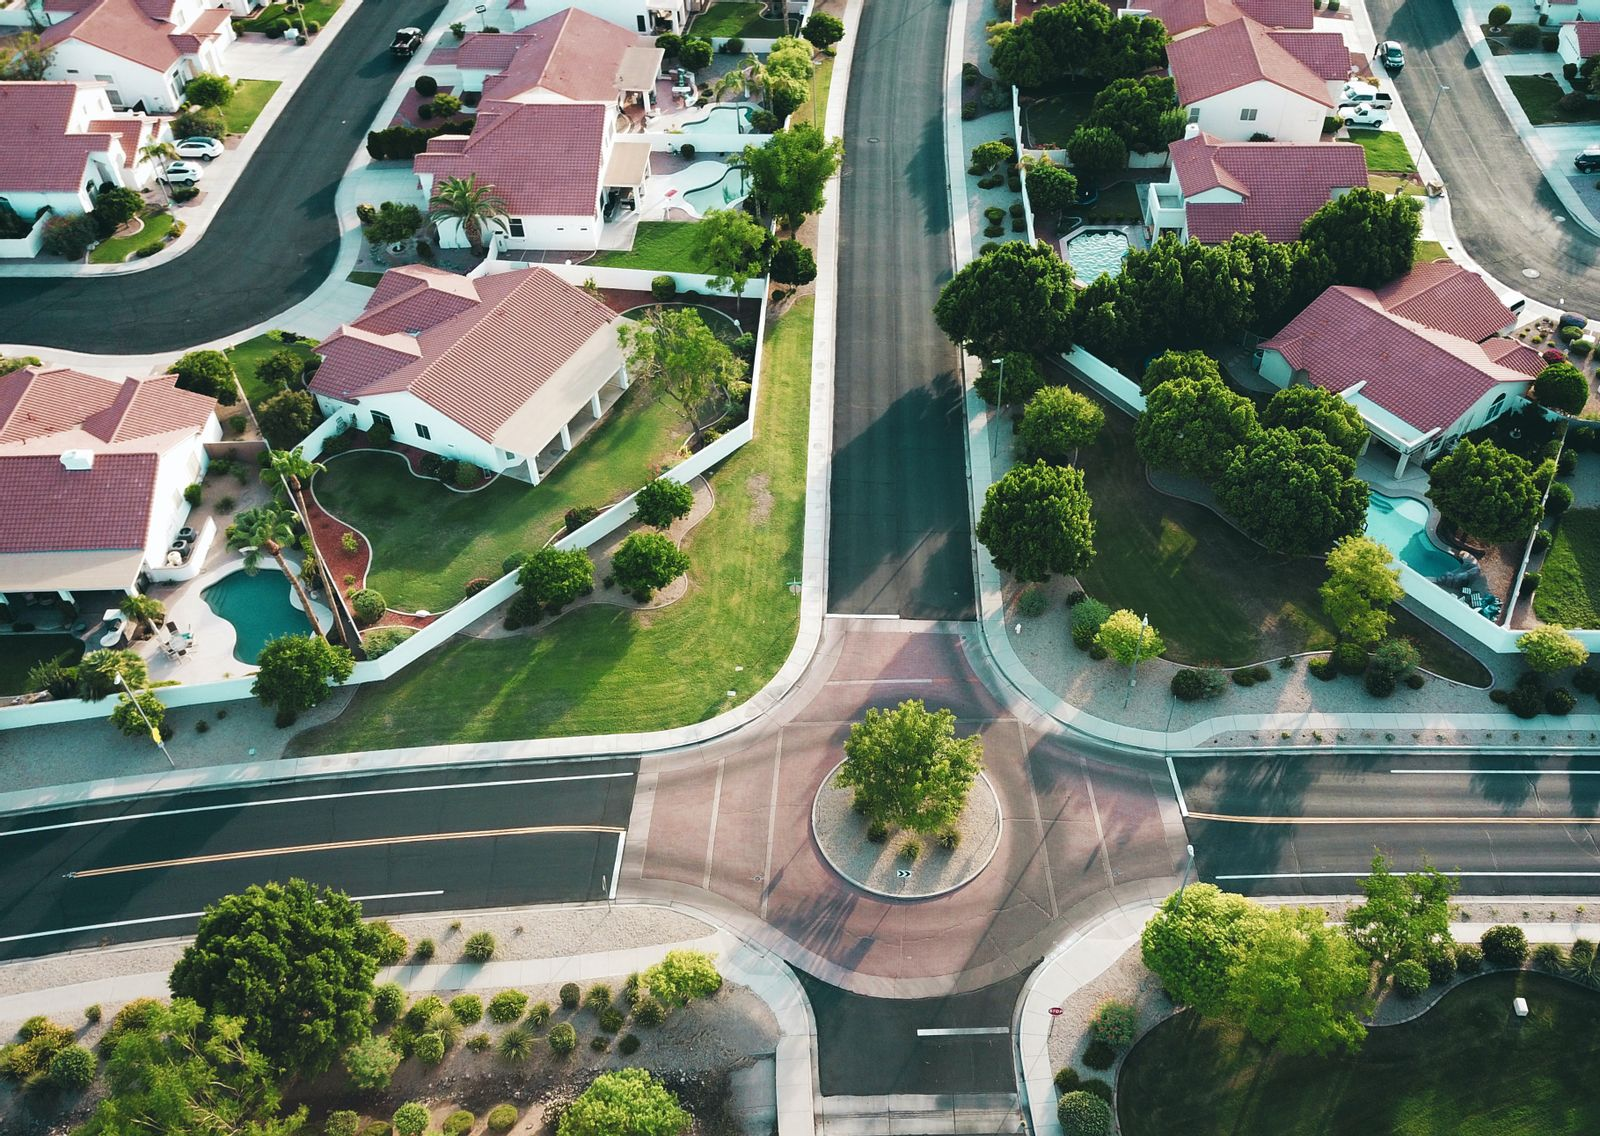 Yes or No: The Upcoming Federal Elections Will Improve Housing Affordability